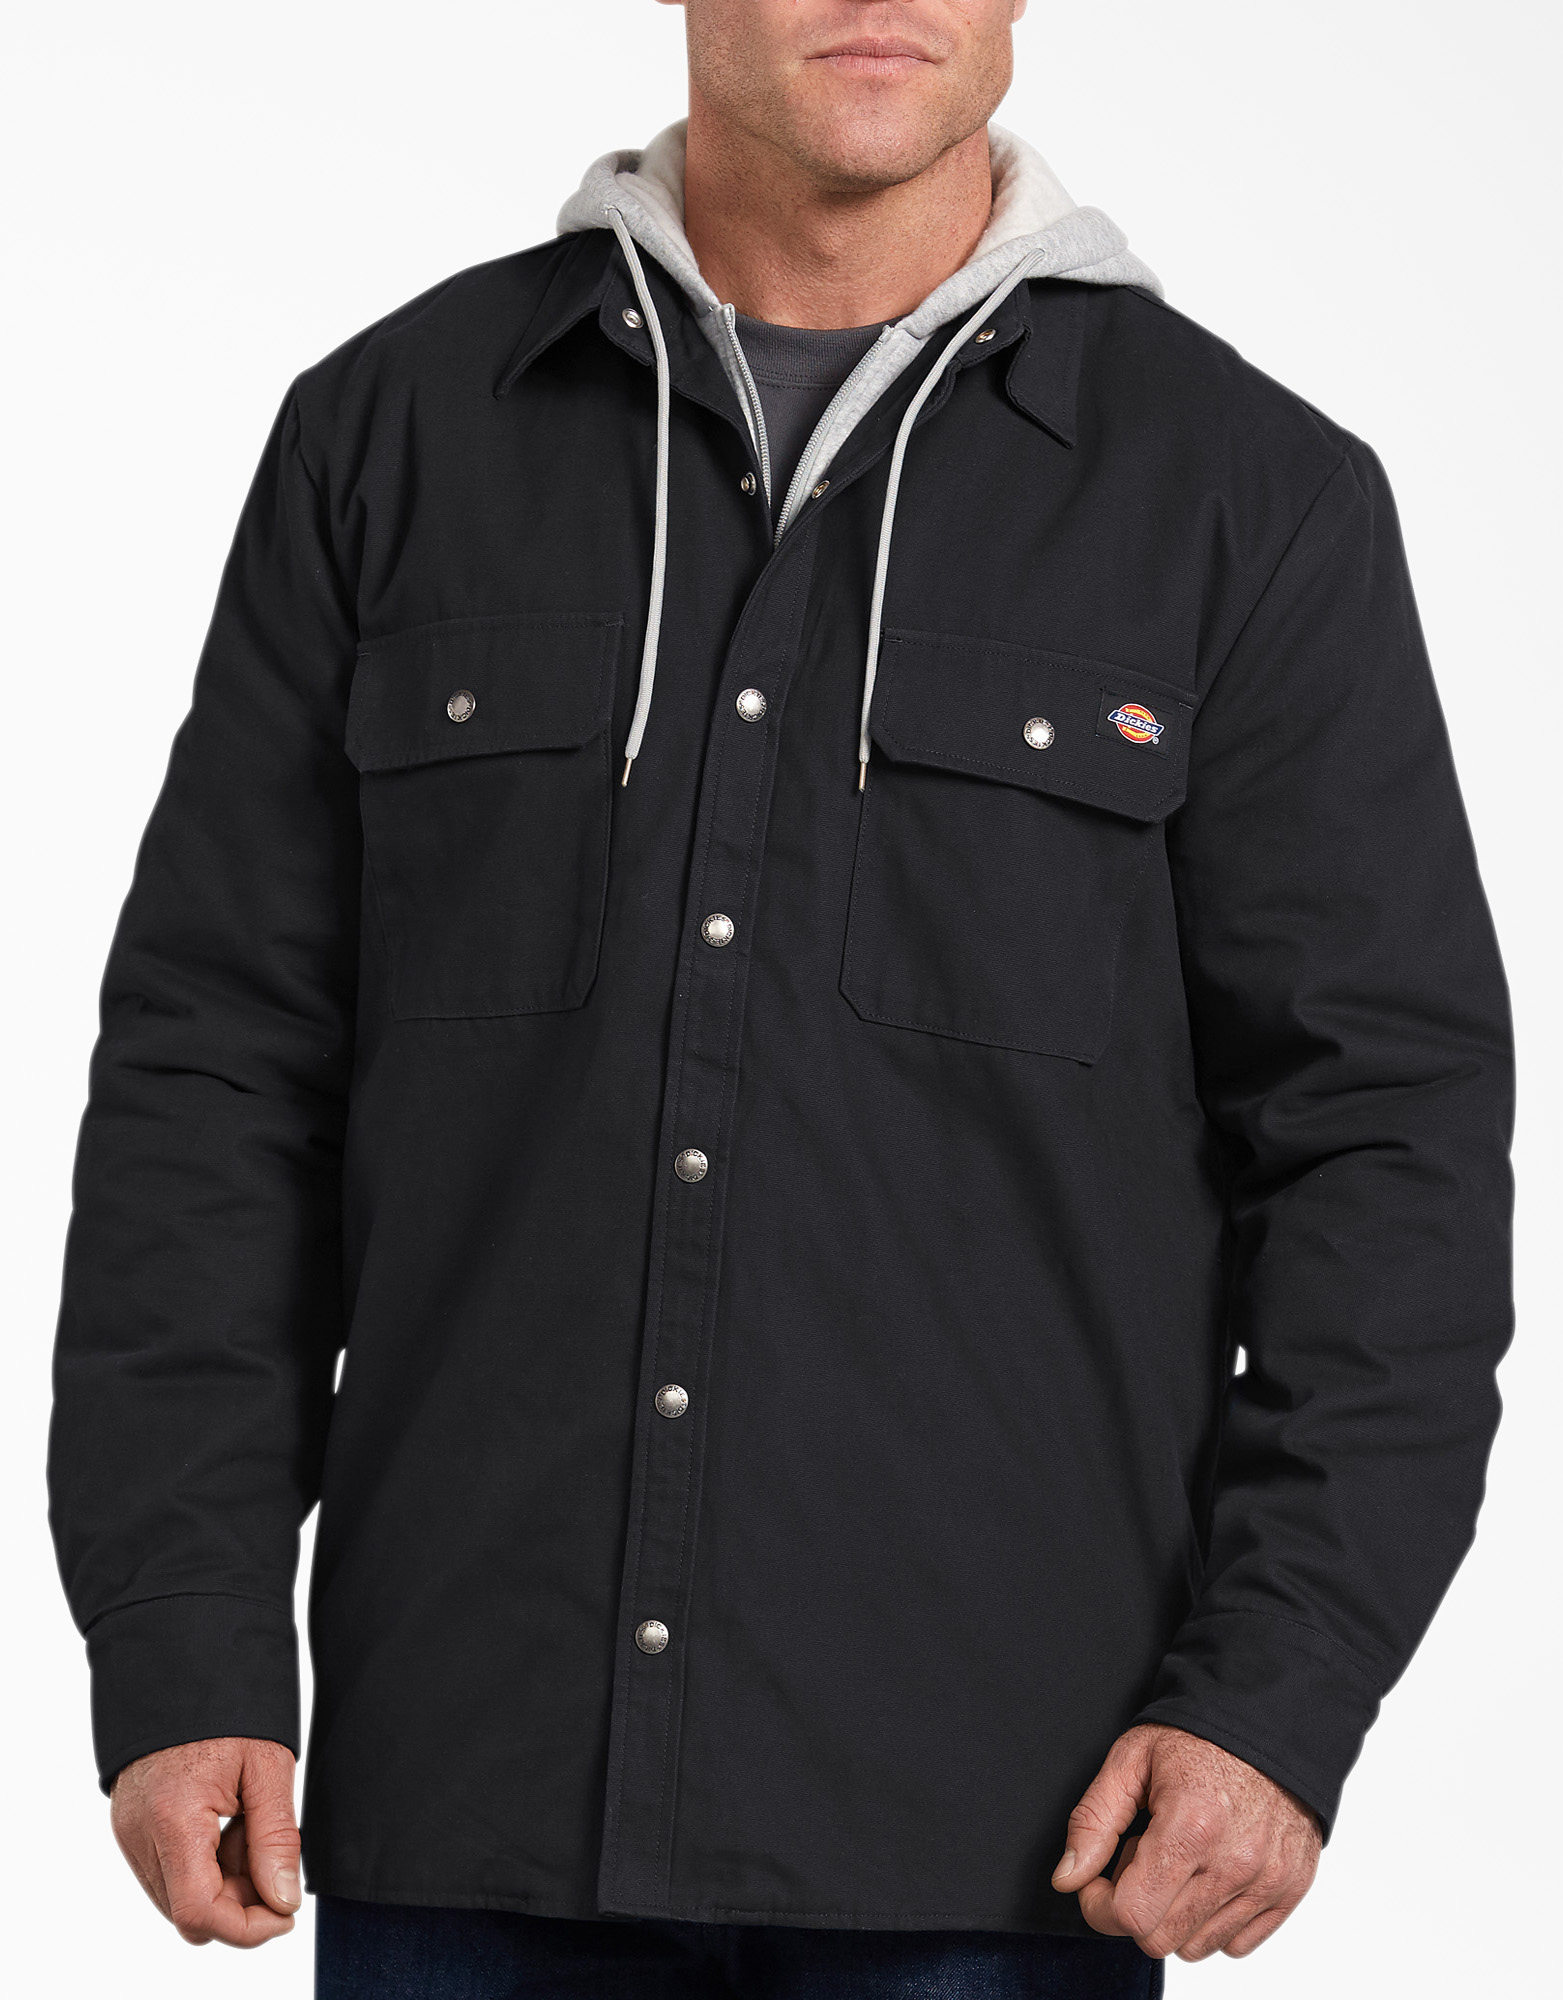 Relaxed Fit Icon Hooded Duck Quilted Shirt Jacket - Black (BK)